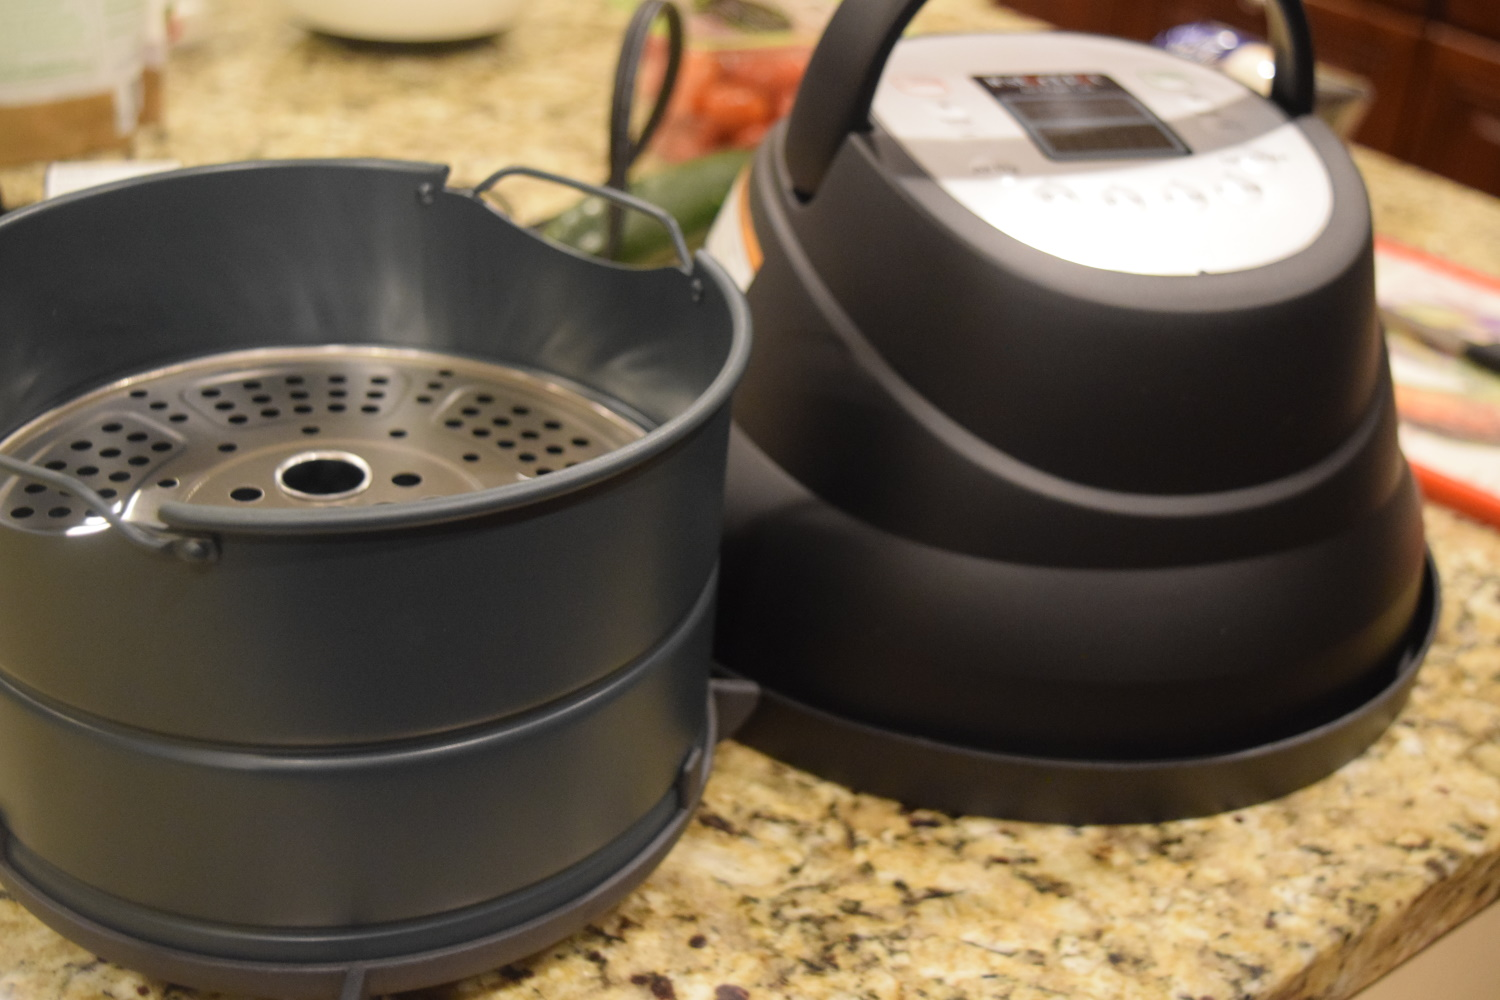 Instant air fryer lid included items